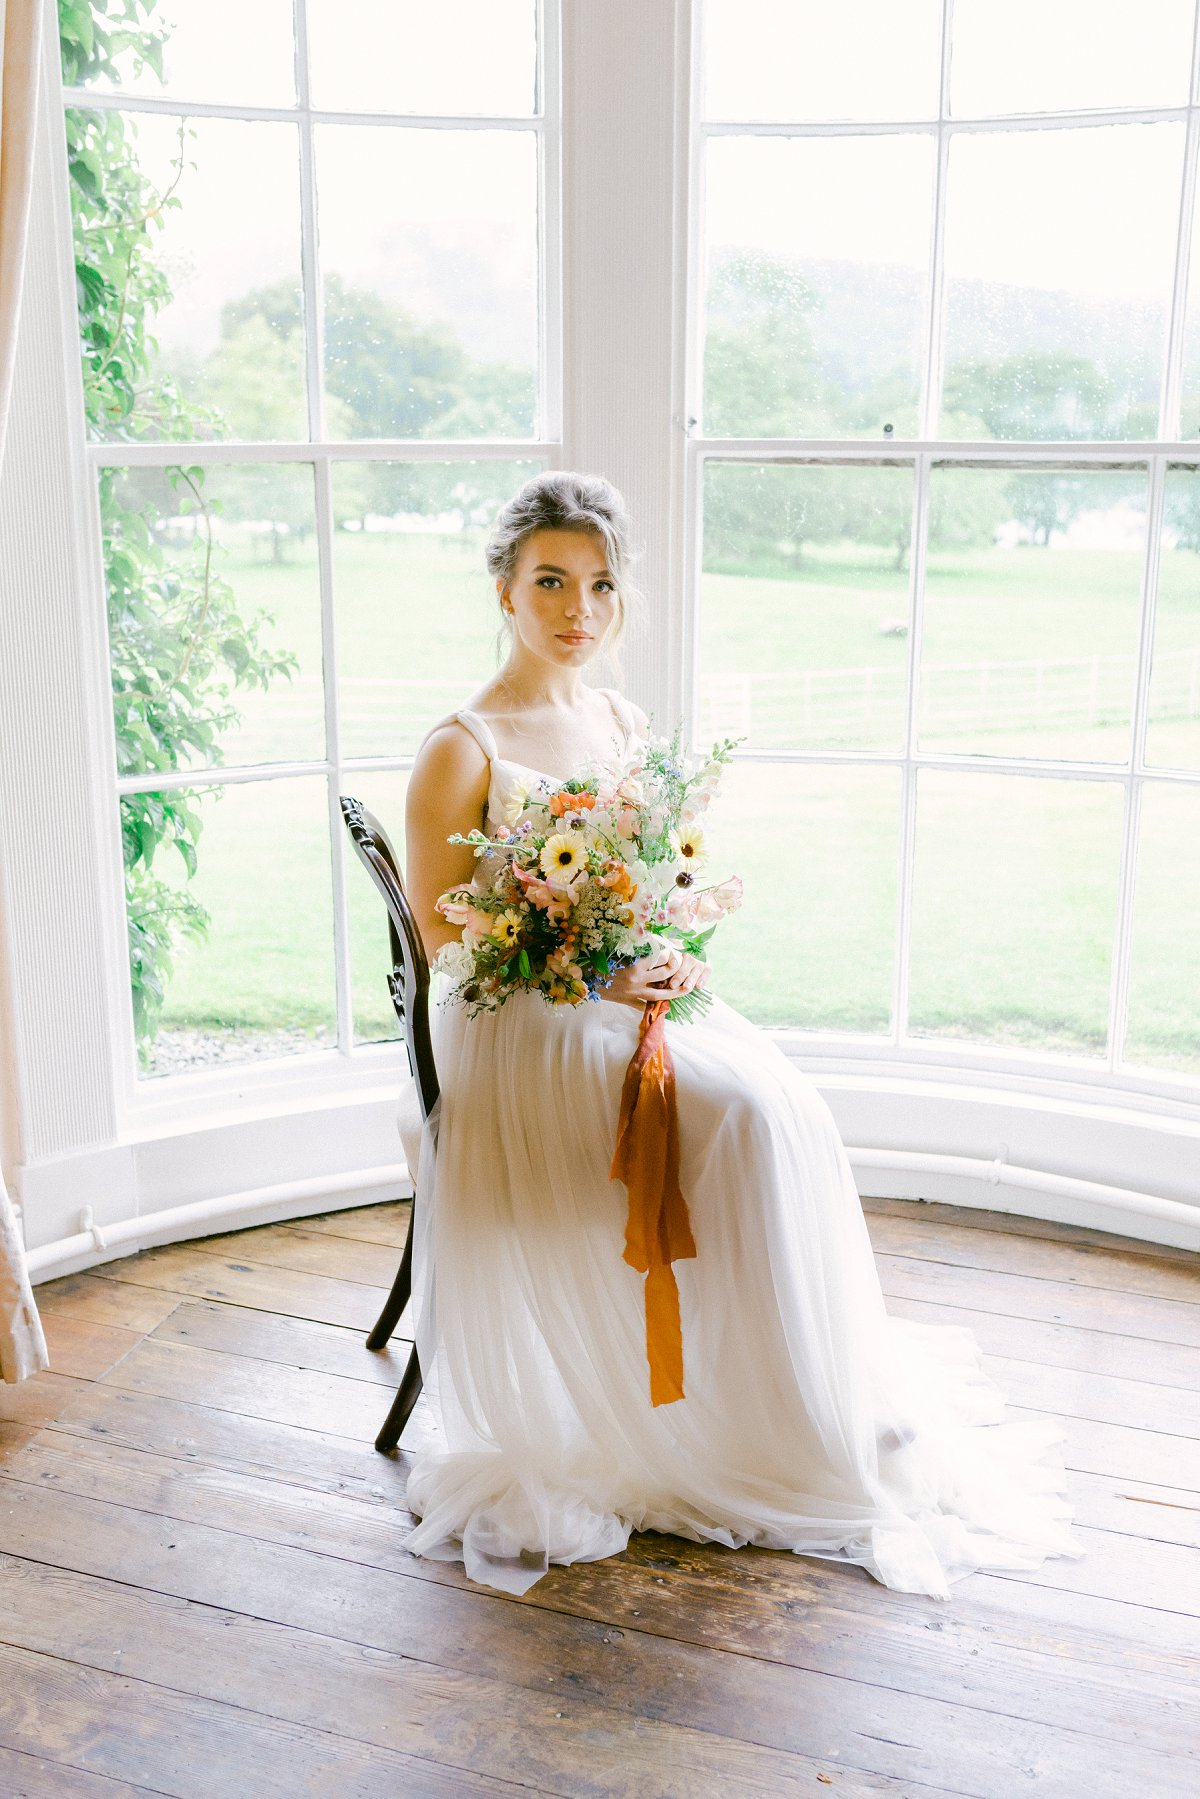 A Styled Wedding Shoot at Town Head Estate Windermere (c) Ailsa Reeve Photography (8)